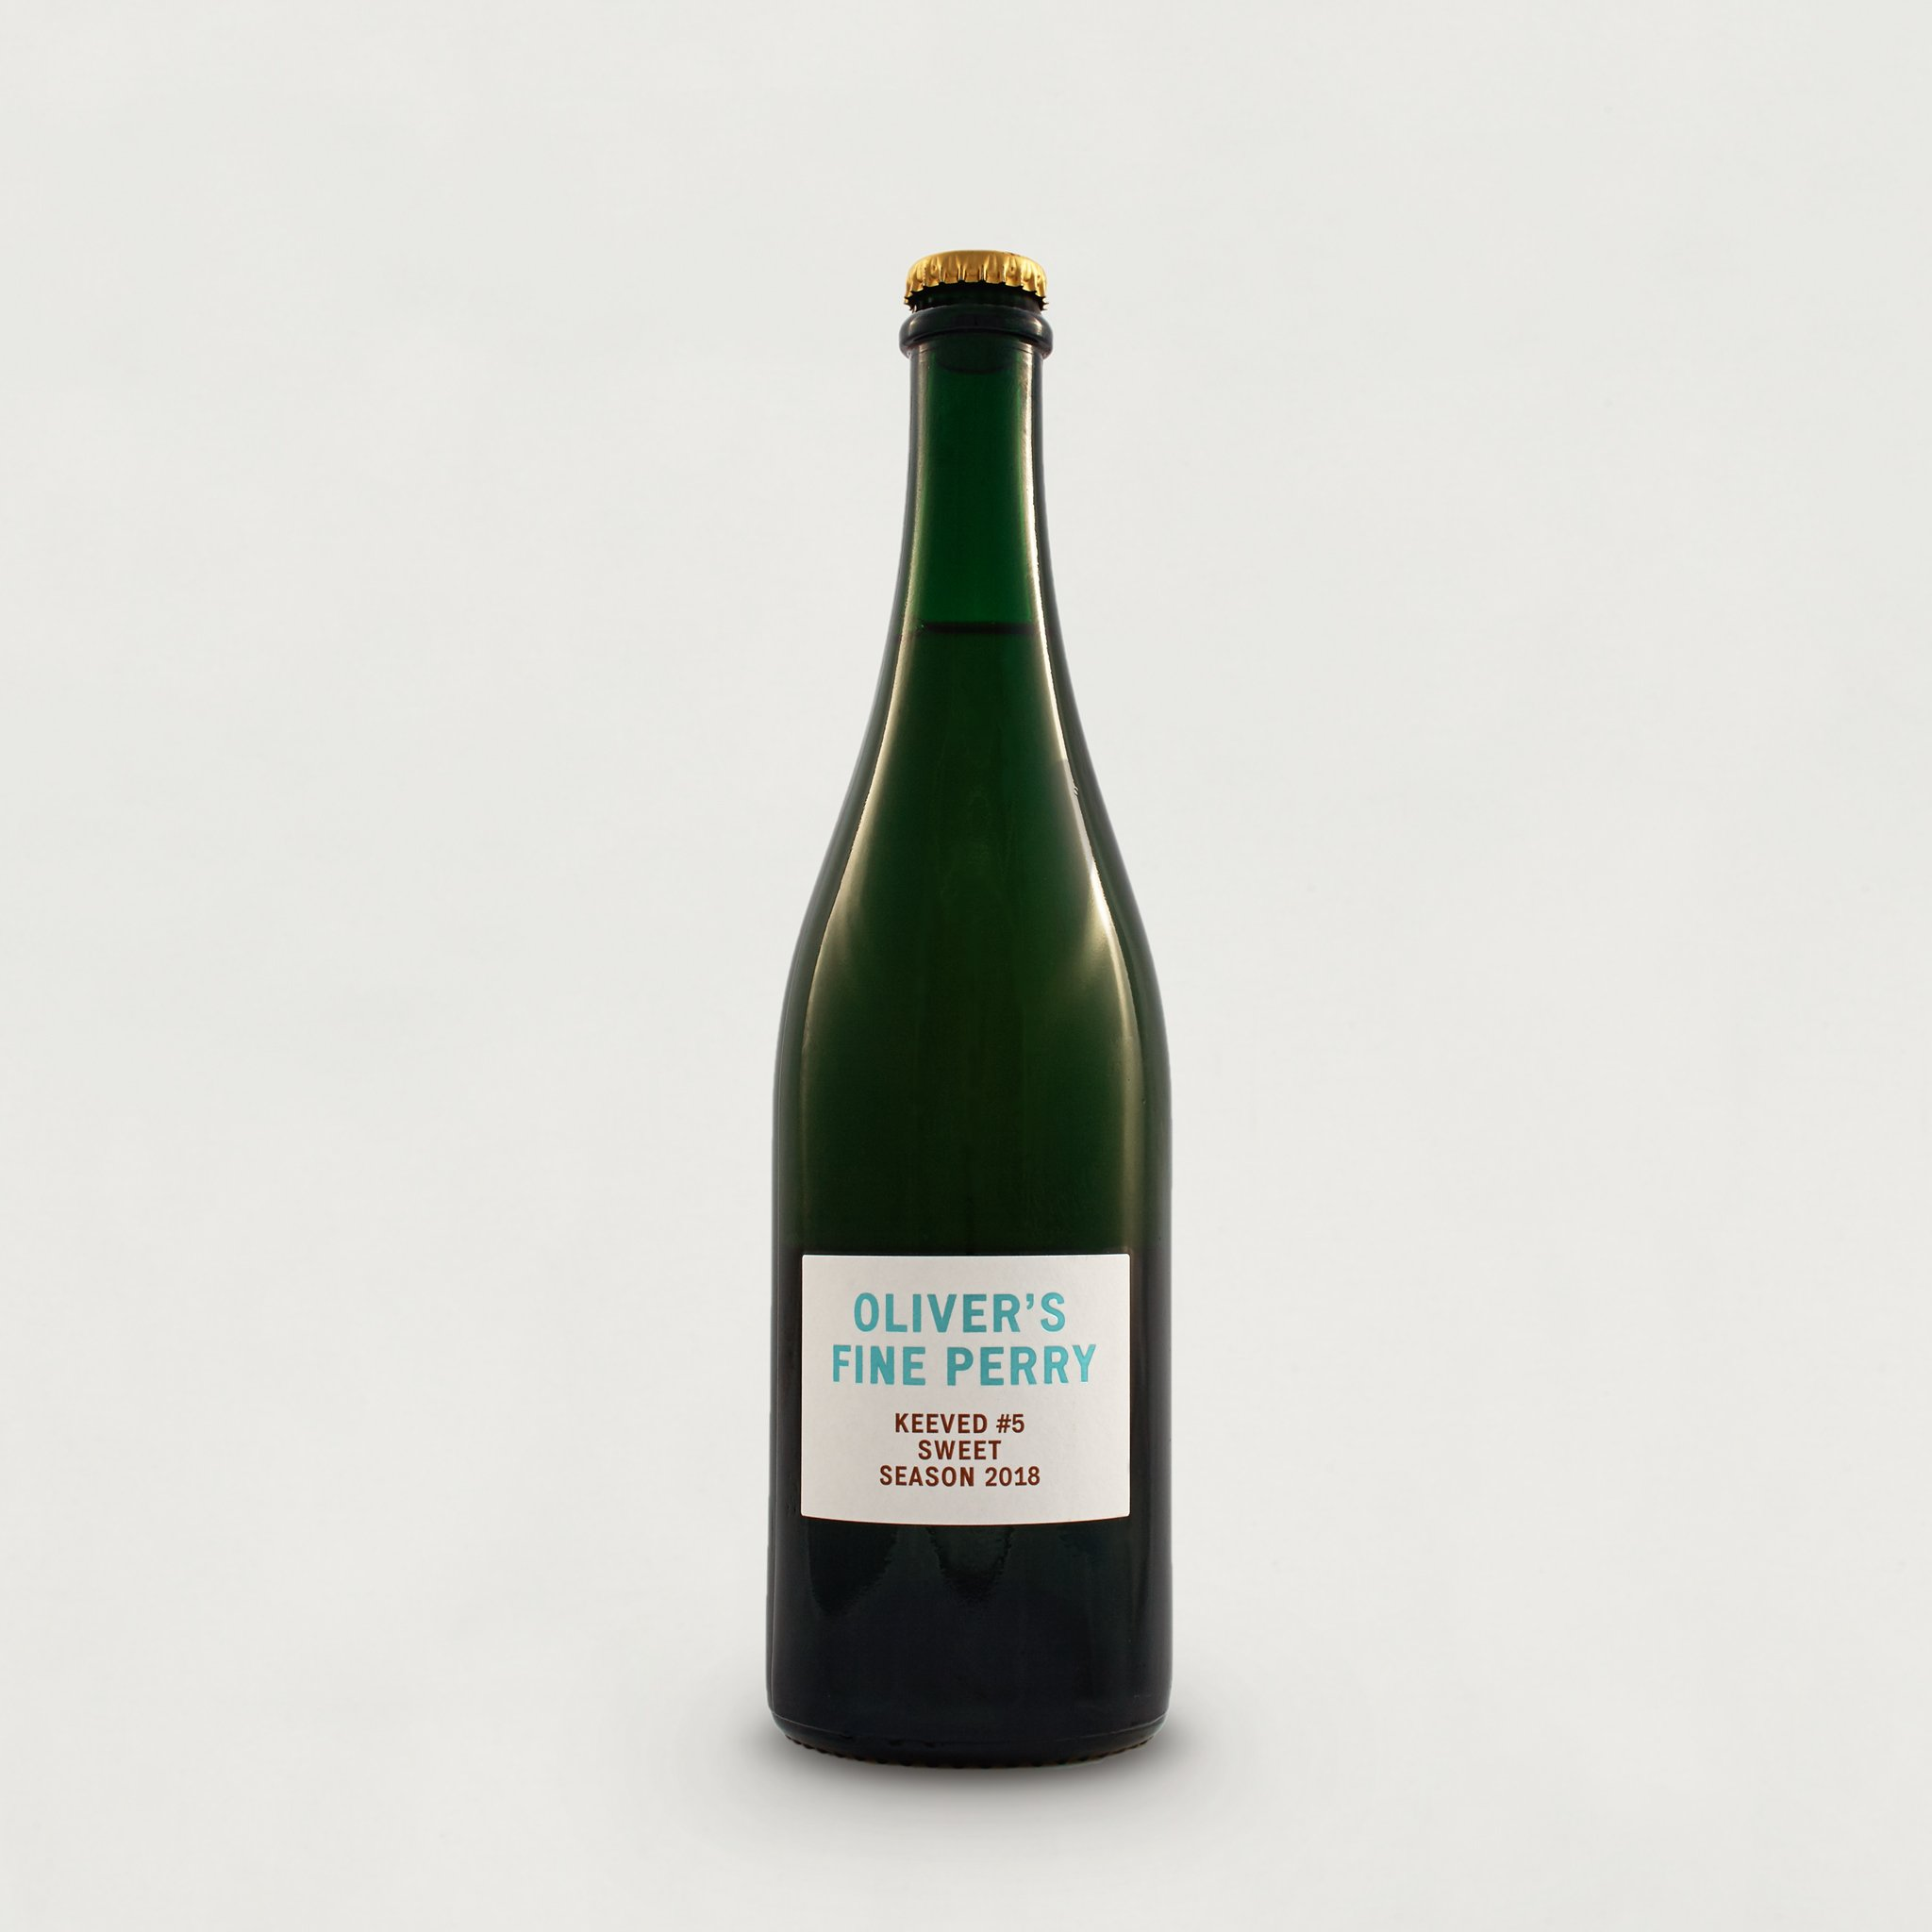 Oliver's Keeved Perry #5 2018 4.3% (750ml)